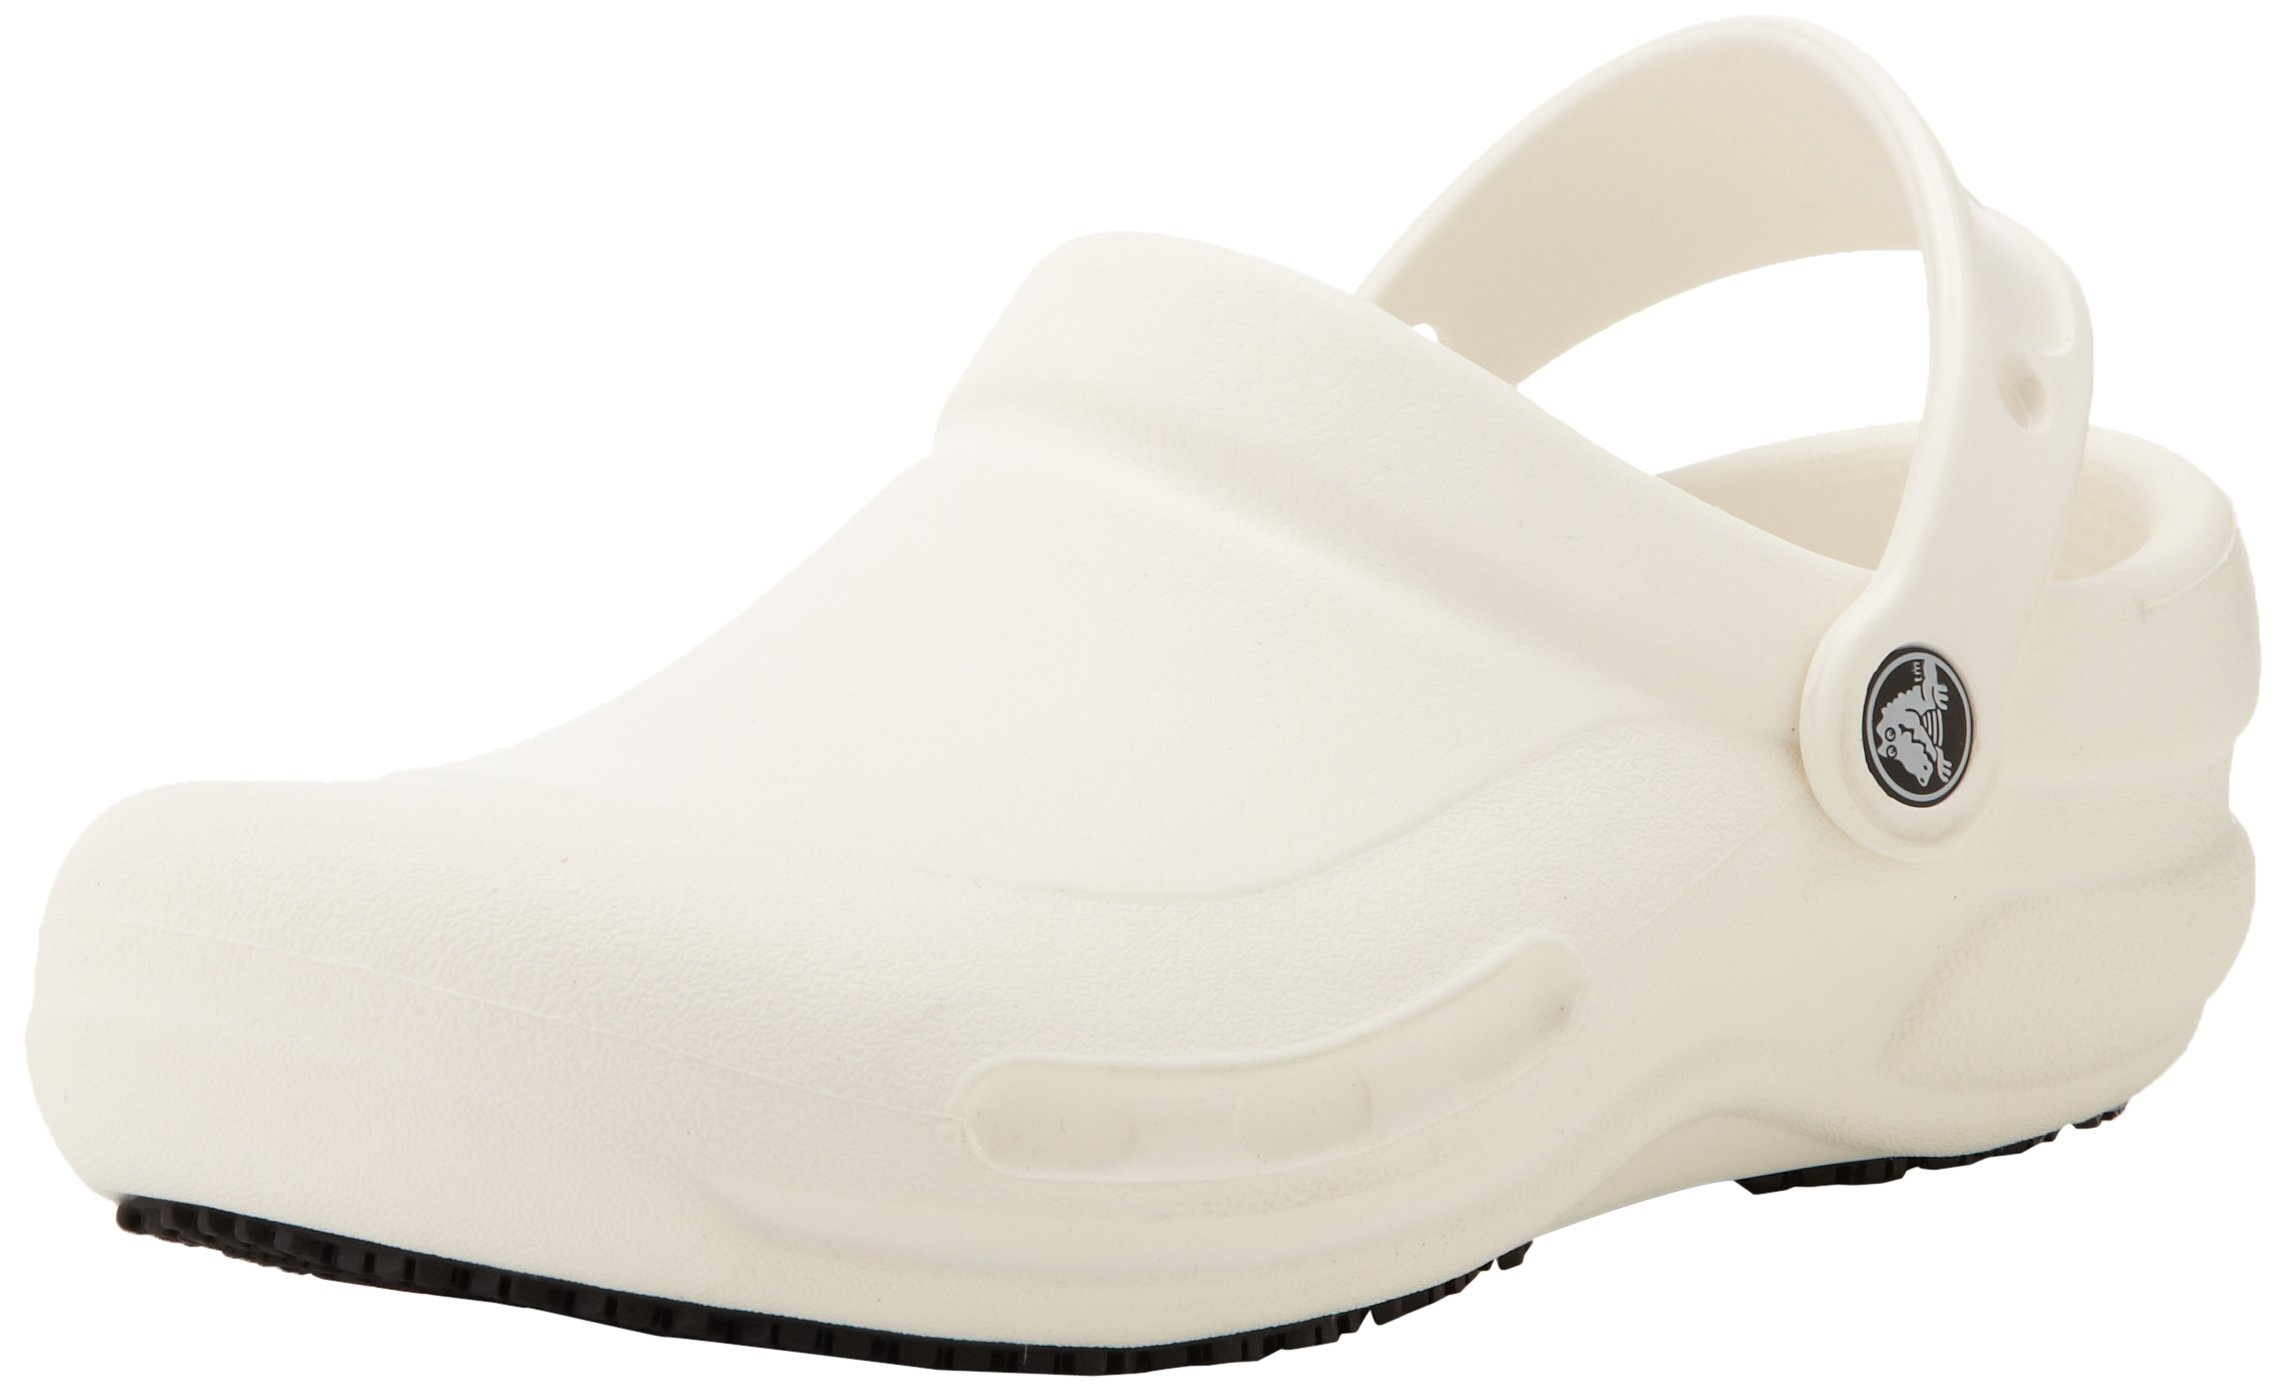 Crocs Unisex Bistro (Unisex) White Clog/Mule Men's 5, Women's 7 Medium by Crocs